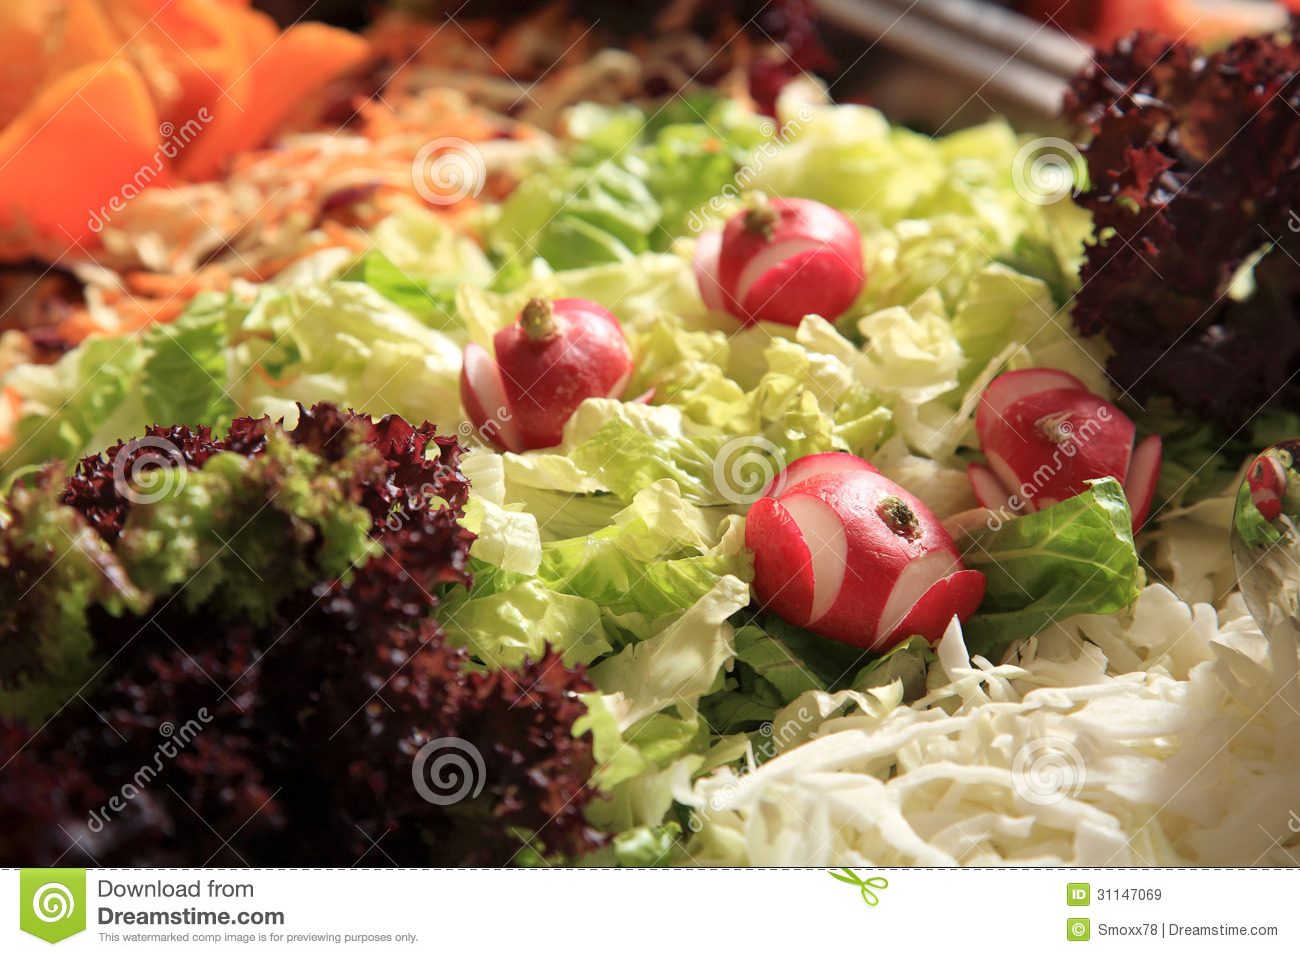 close up of a fresh green salad with lettuce mr no pr no 0 292 0